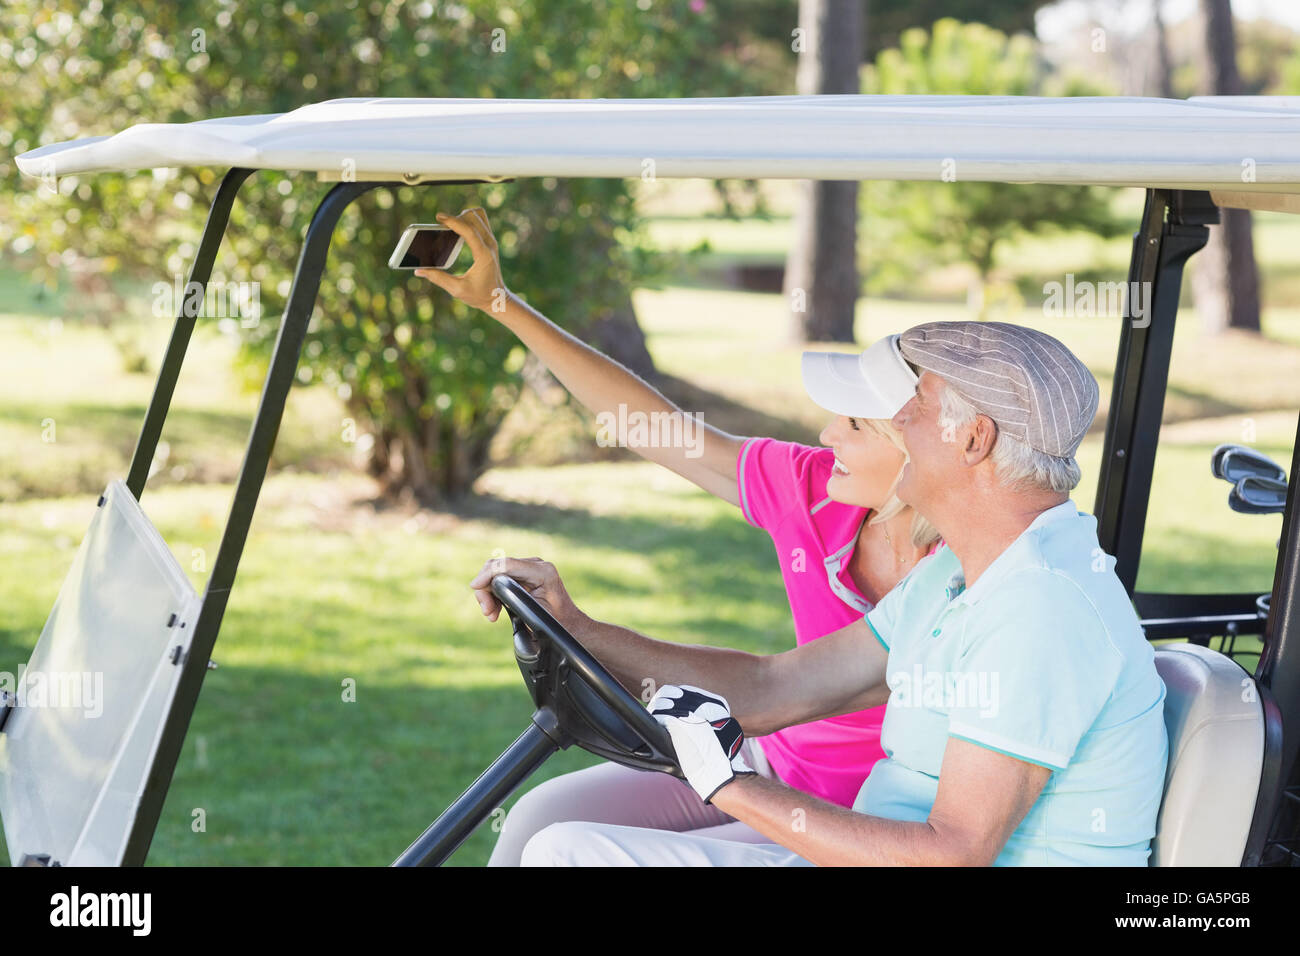 Couple taking self portrait while sitting in golf buggy - Stock Image